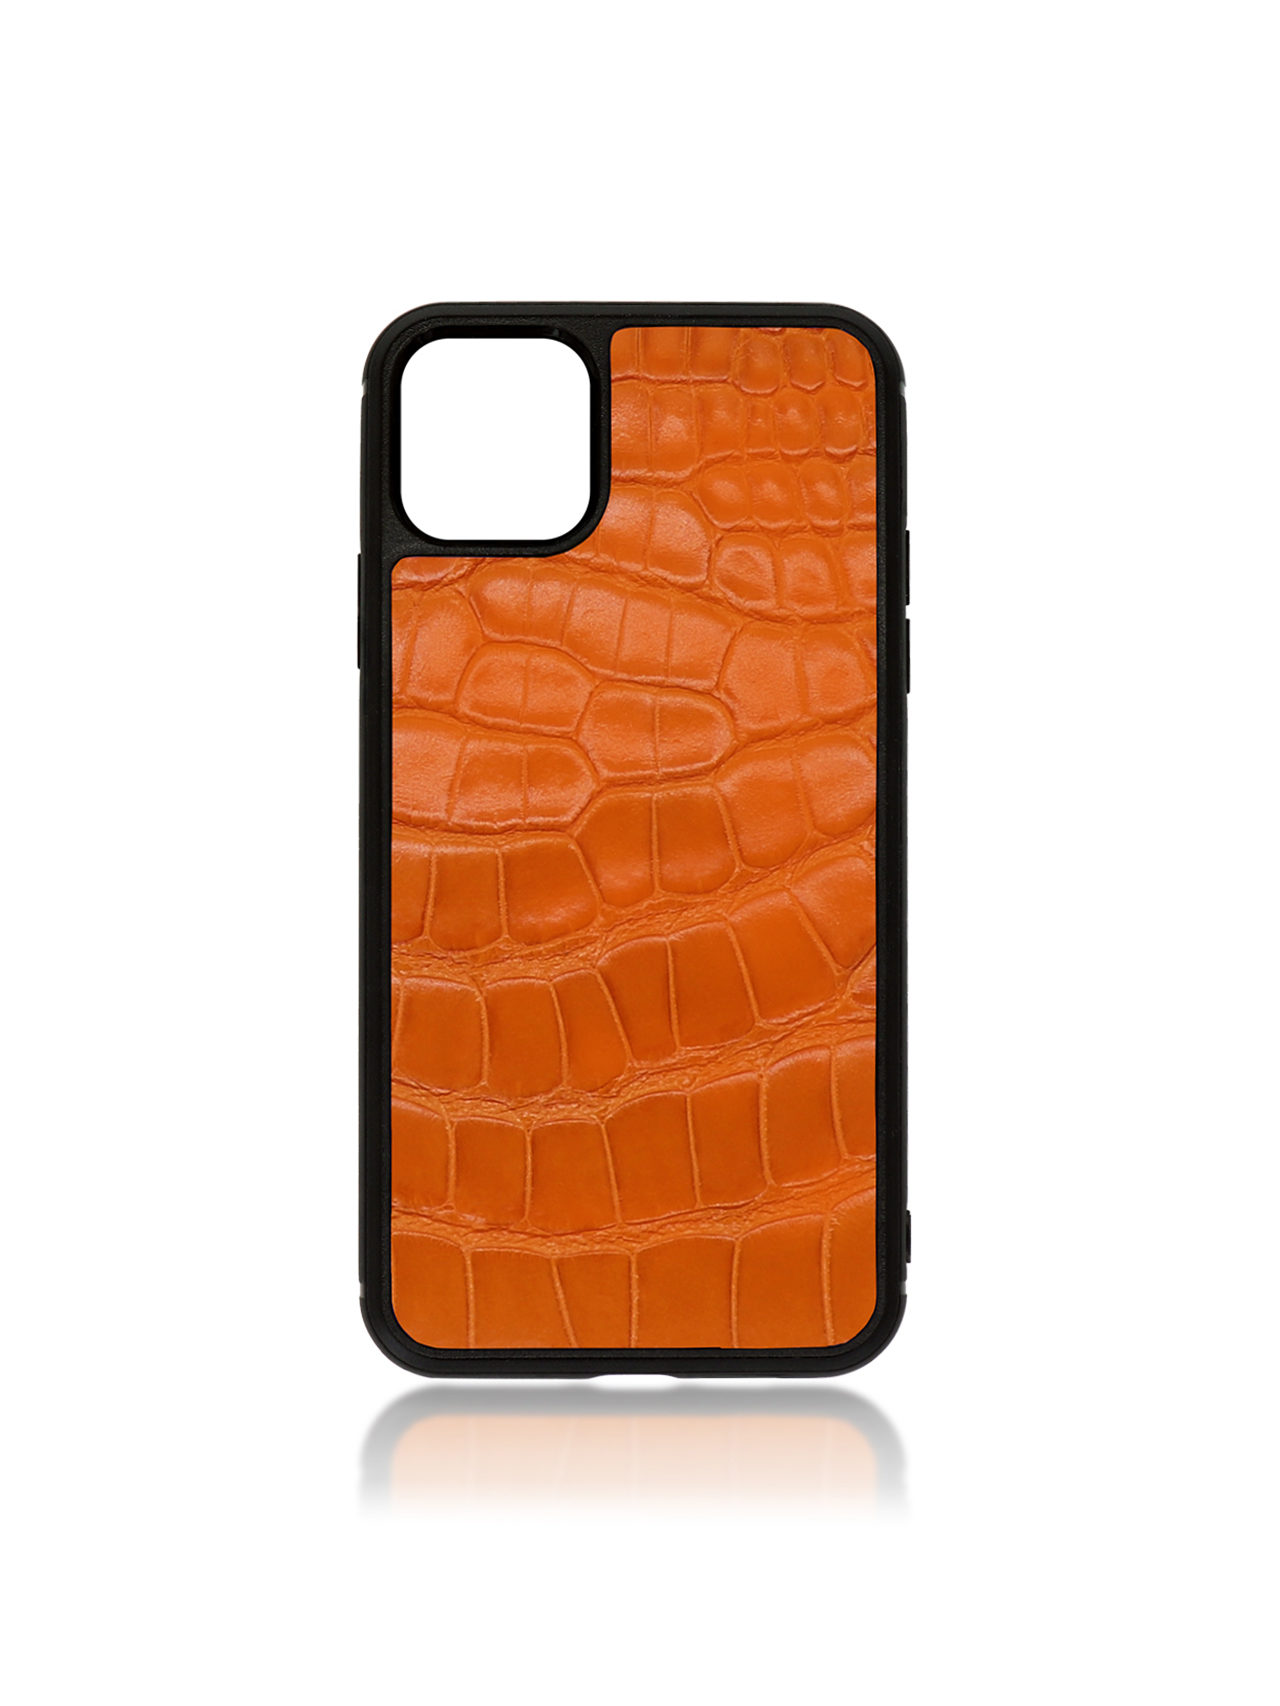 Iphone 11 pro max alligator